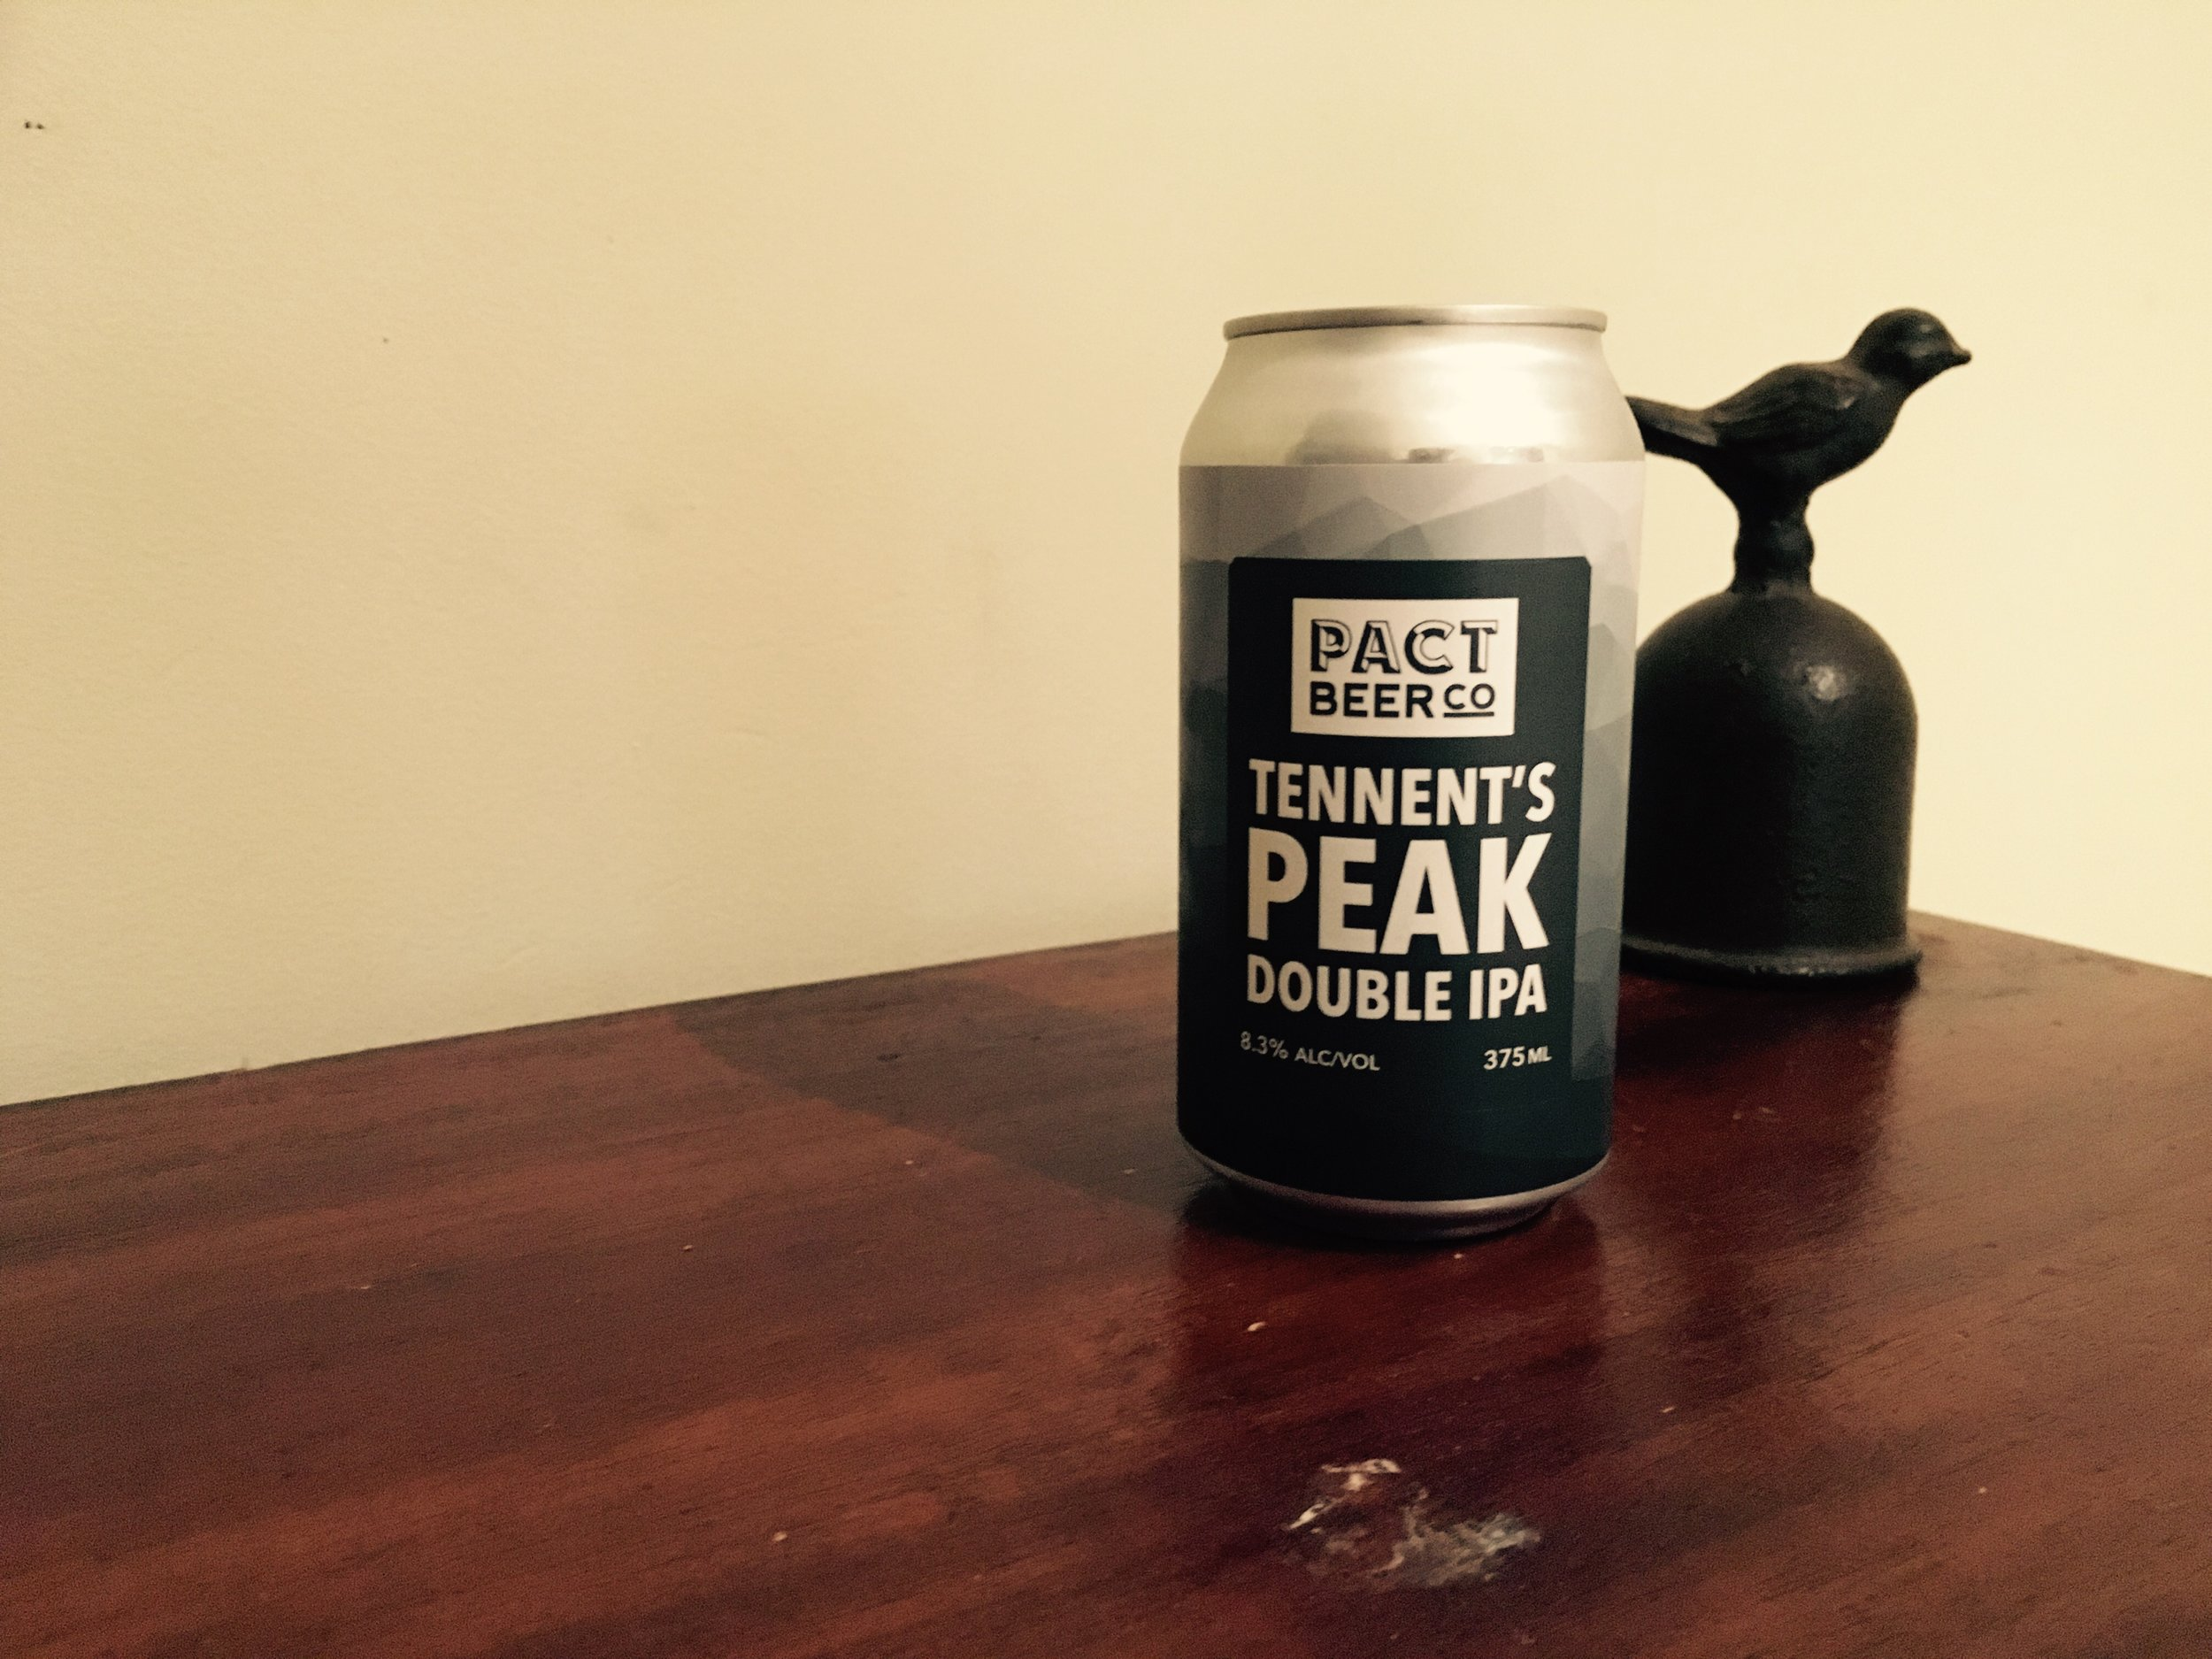 Pact Beer Co. Tennent's Peak Double IPA